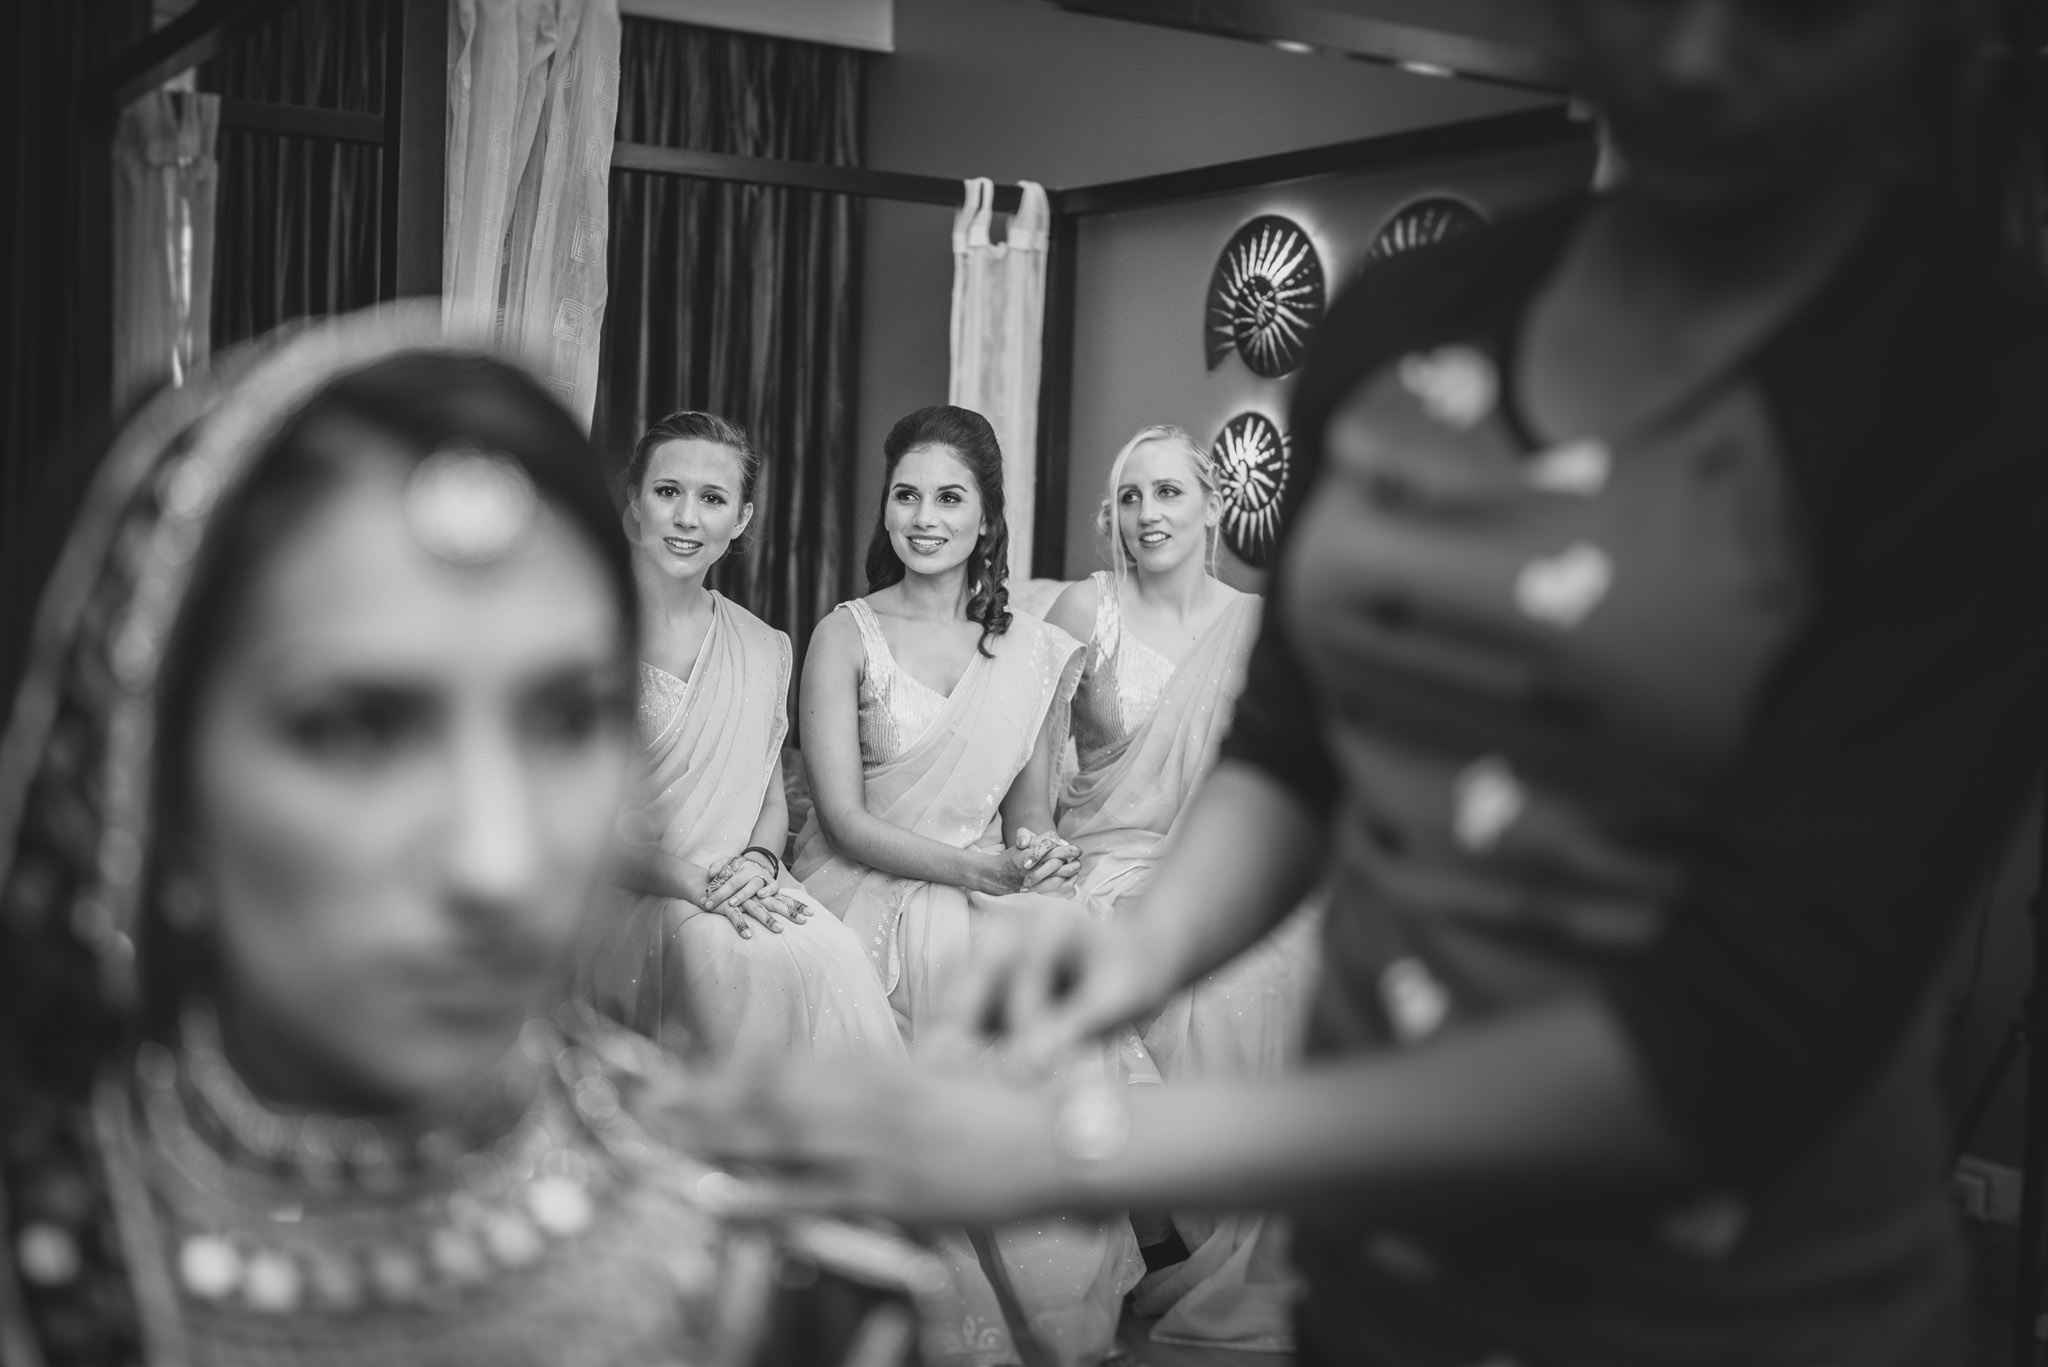 Make-up-getting-ready-brides-photography-50